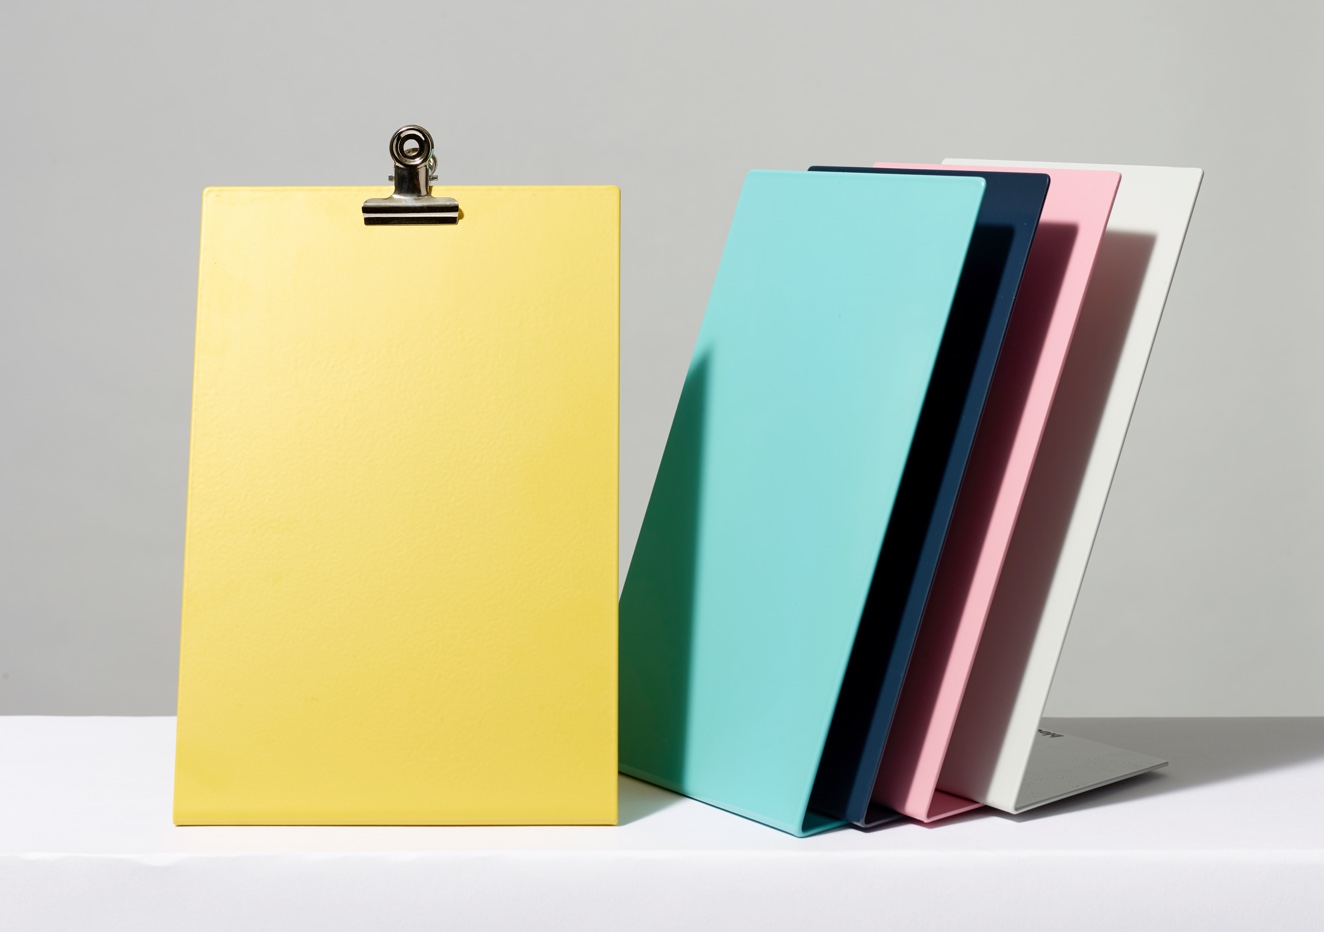 Five colorful clipboards leaning against one another